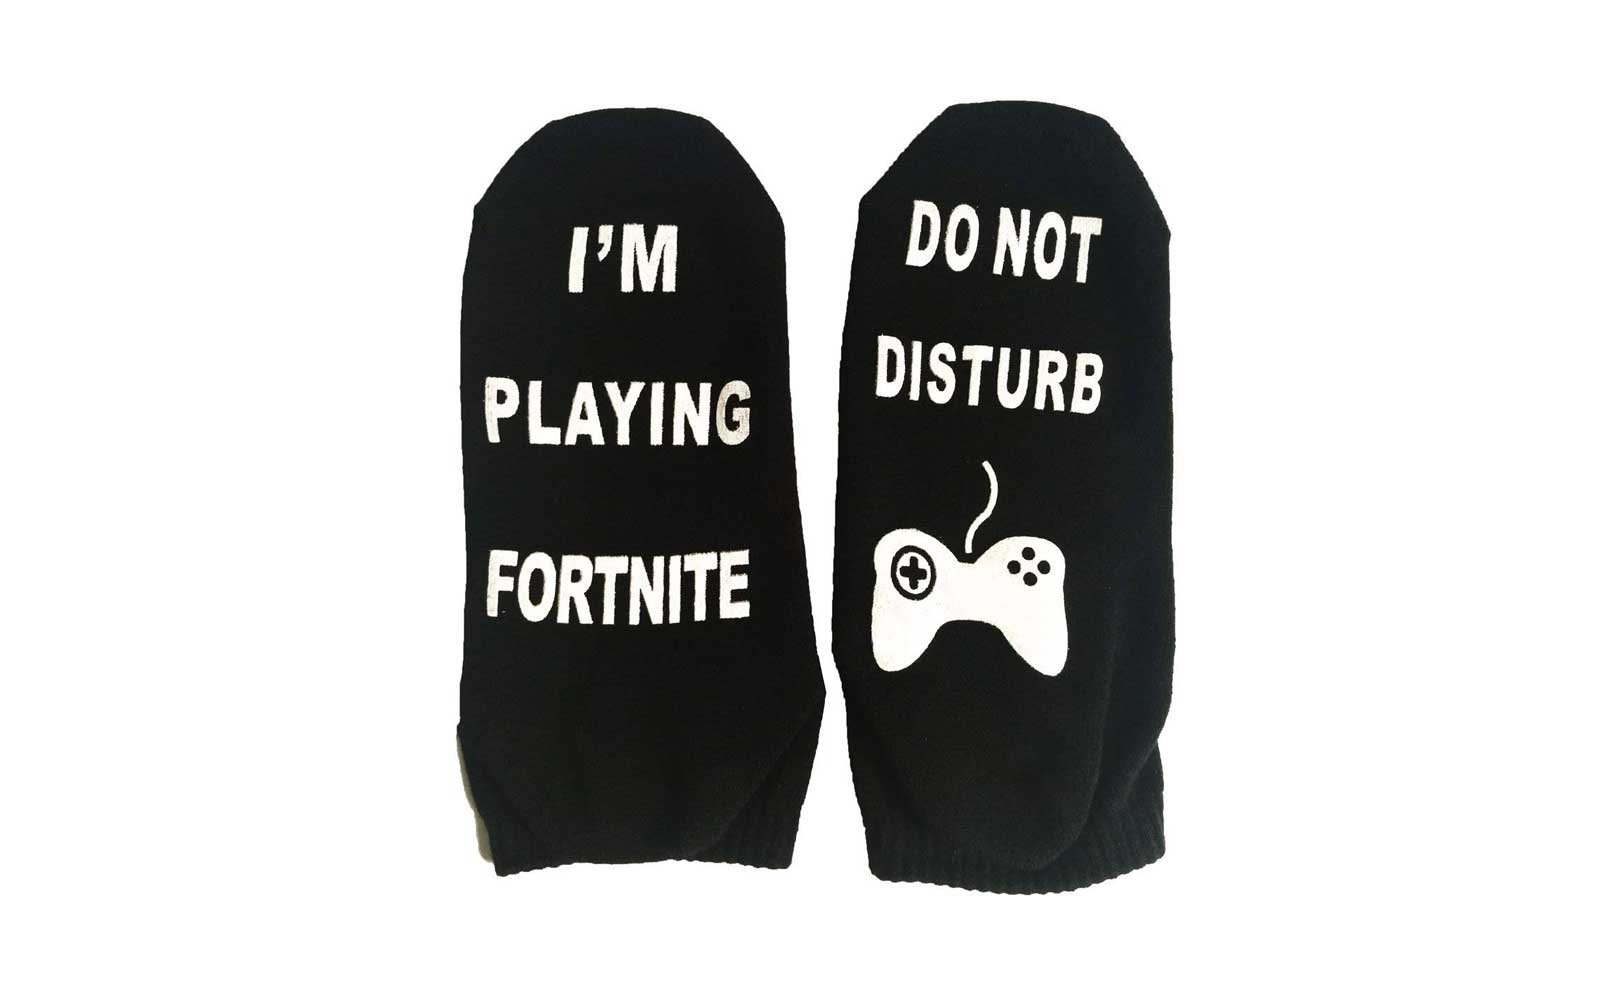 Fortnite Socks Gifts For Teens Courtesy Of Amazon